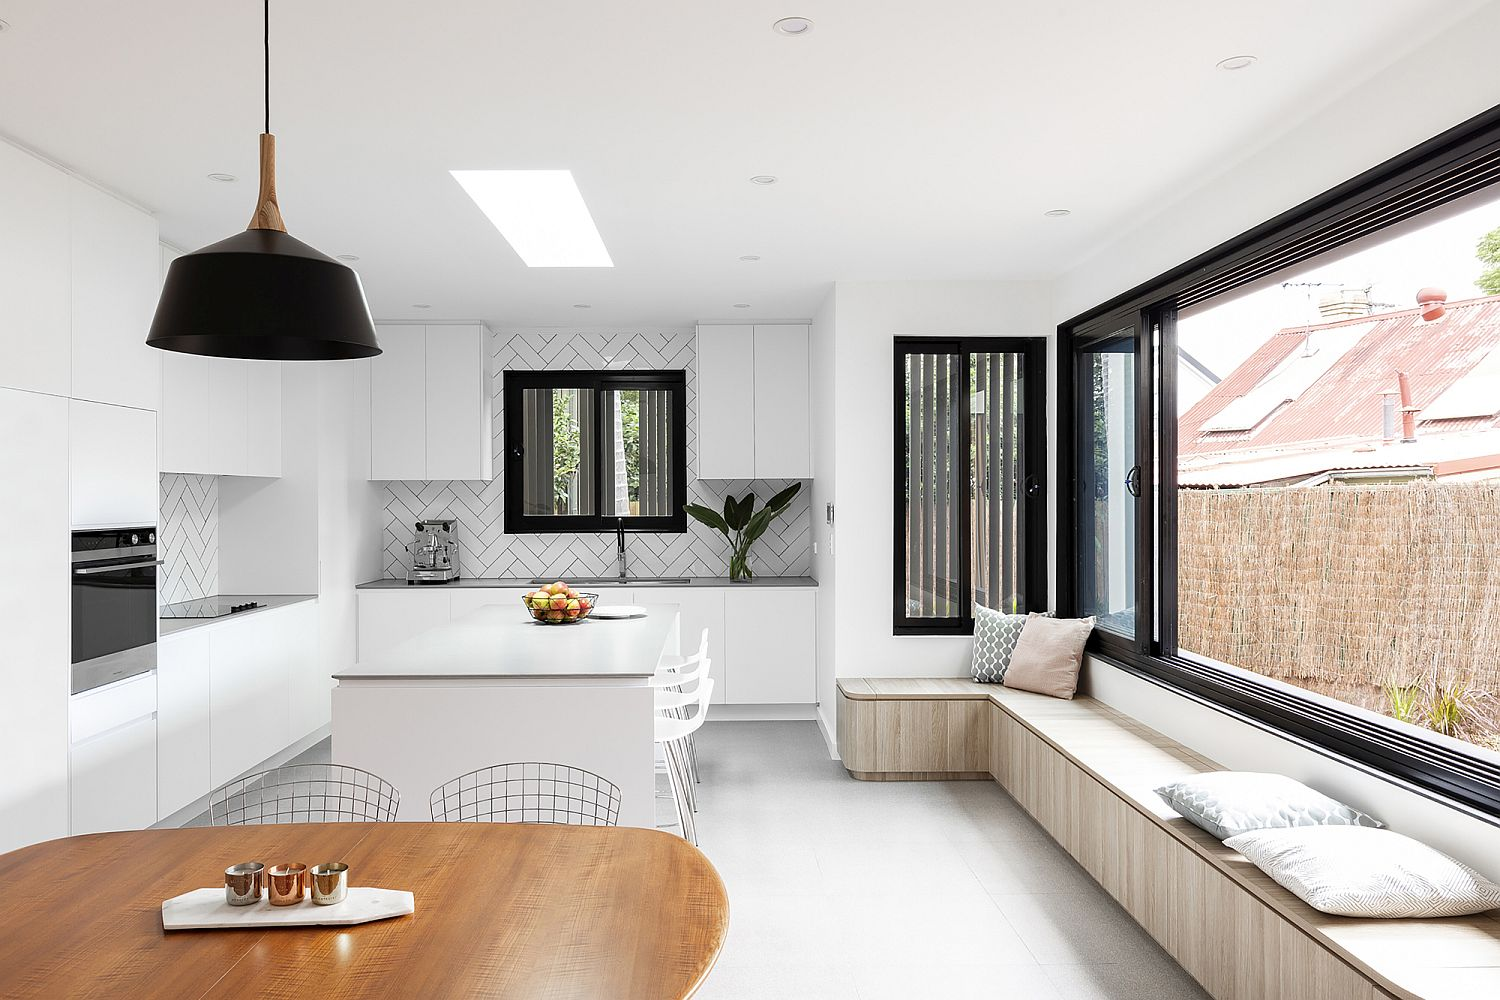 Winow-seat-in-the-kitchen-and-dining-area-with-storage-options-added-to-the-mix